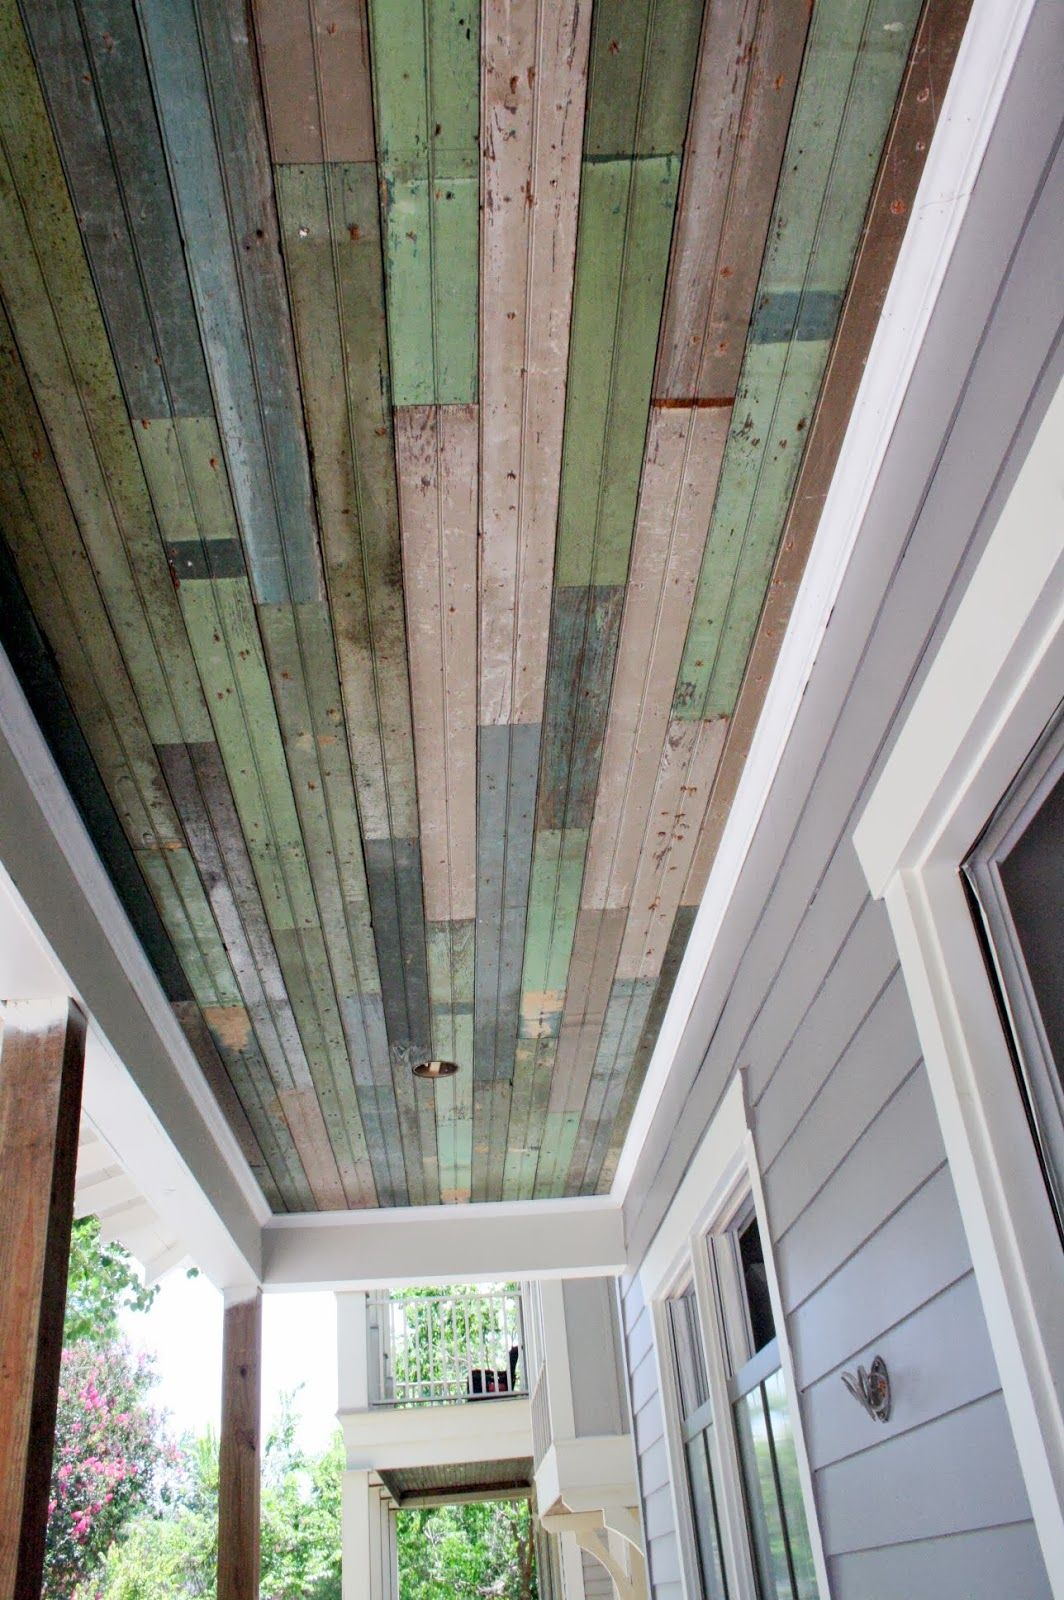 My Trip To The Salvage Yard Porch Ceilings And Bead Board Ceiling